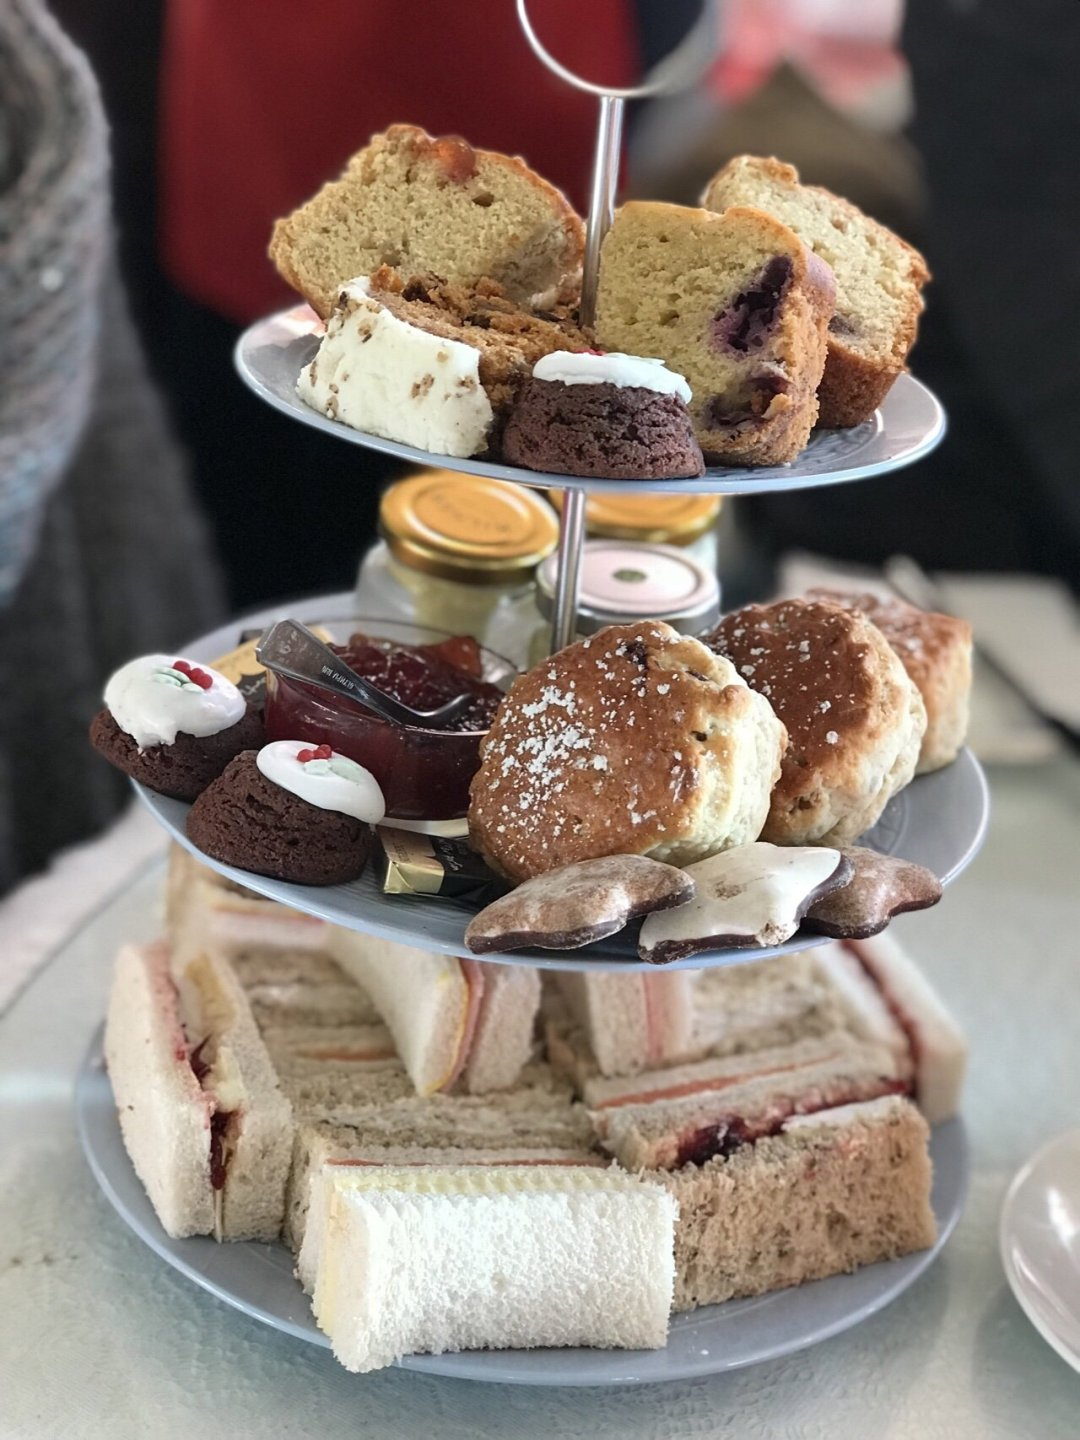 Afternoon tea at Merrymeade Tea Rooms